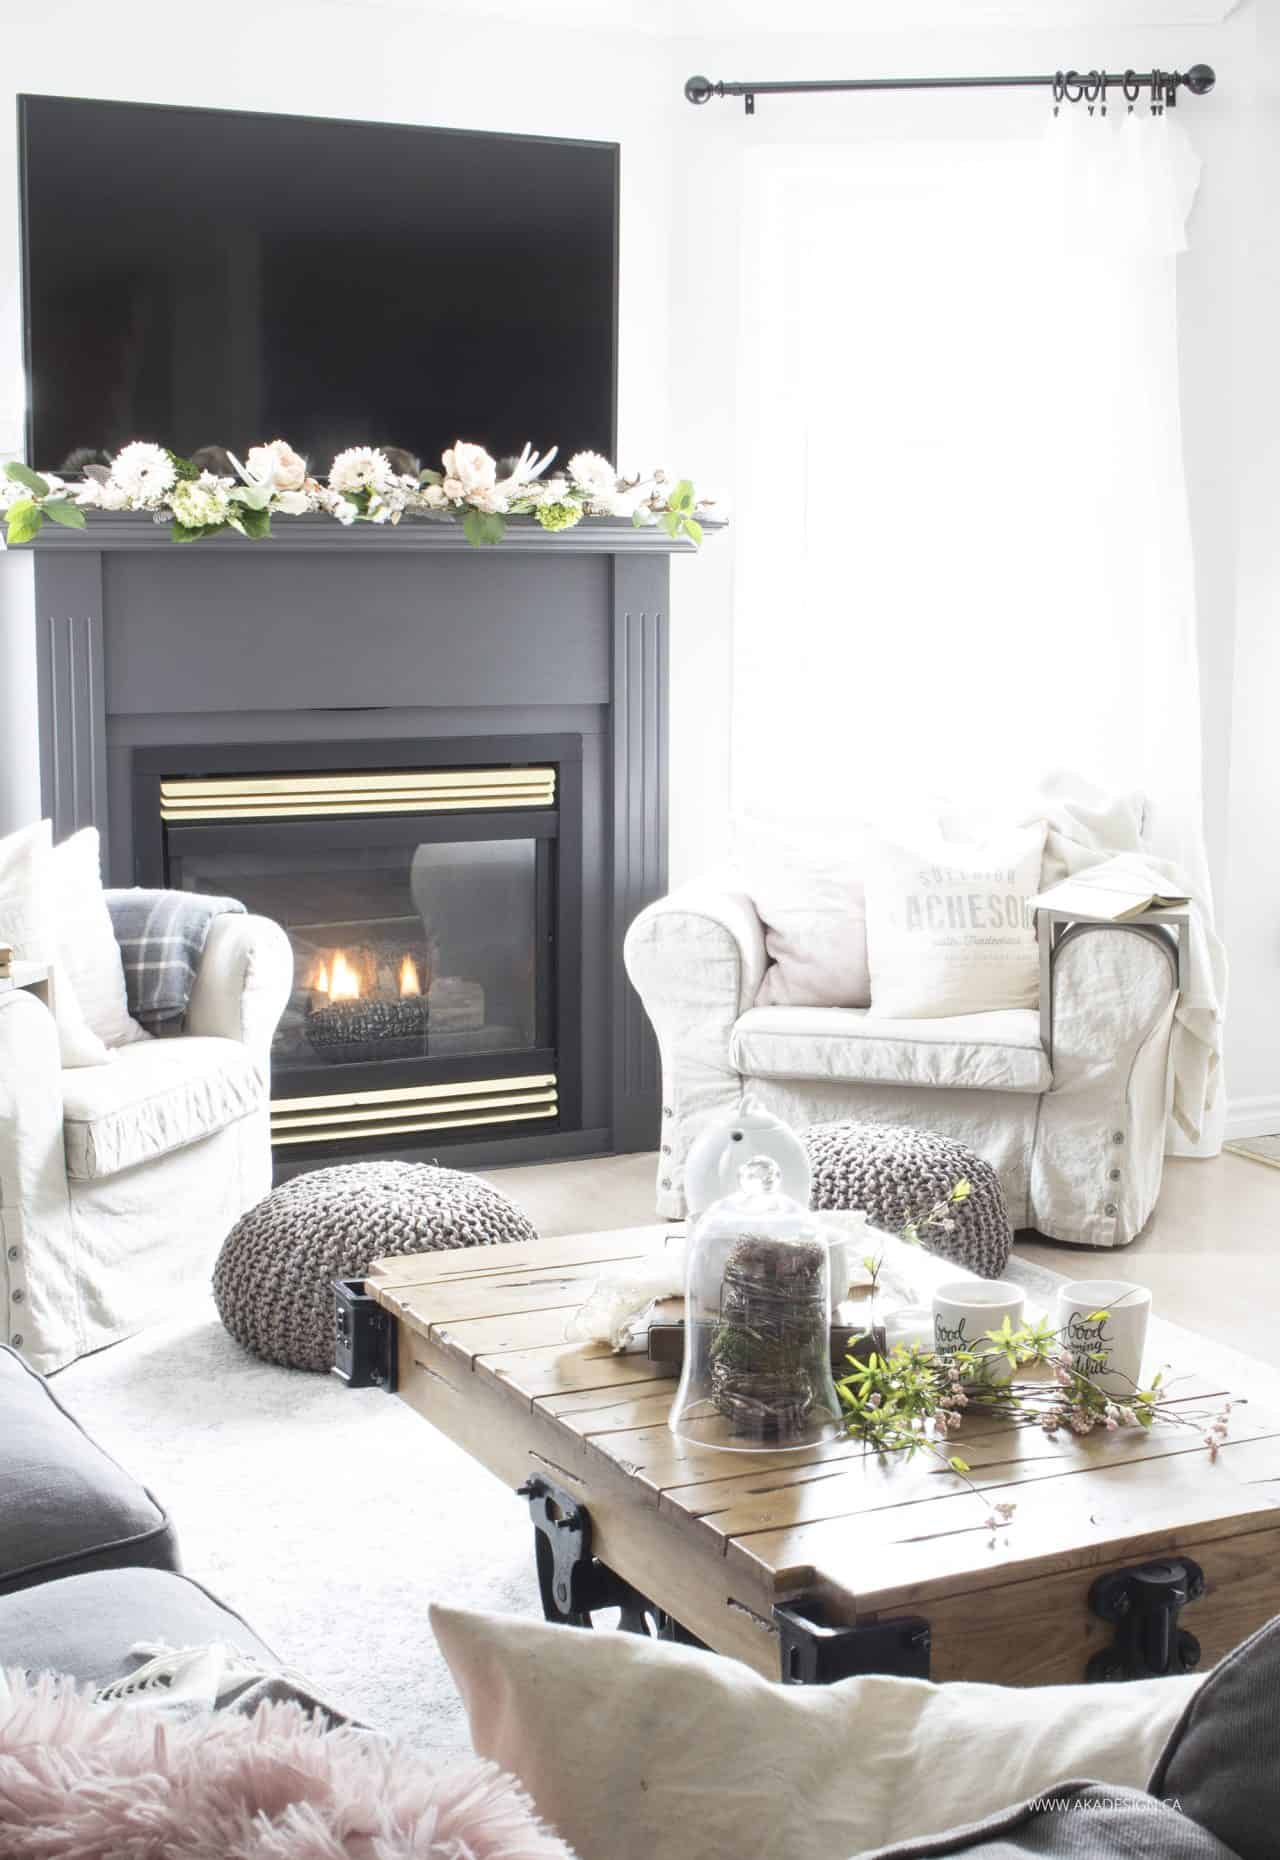 grey painted fireplace mantel with spring flowers flanked by two arm chairs